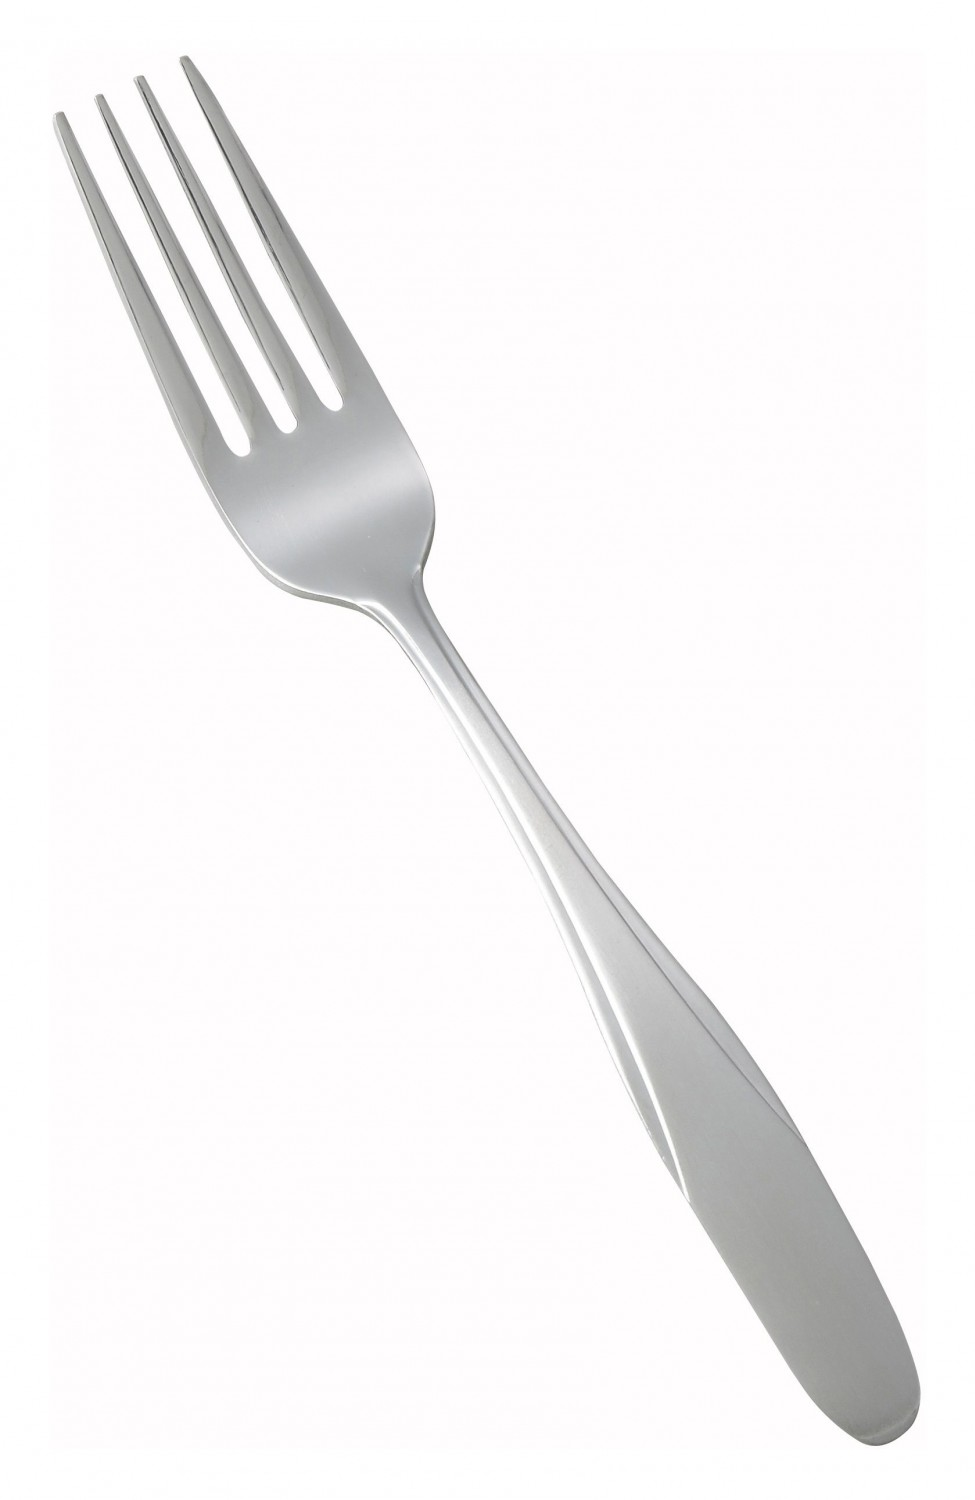 Winco 0008-05 Manhattan Heavy Weight Stainless Steel Dinner Fork - 1 doz